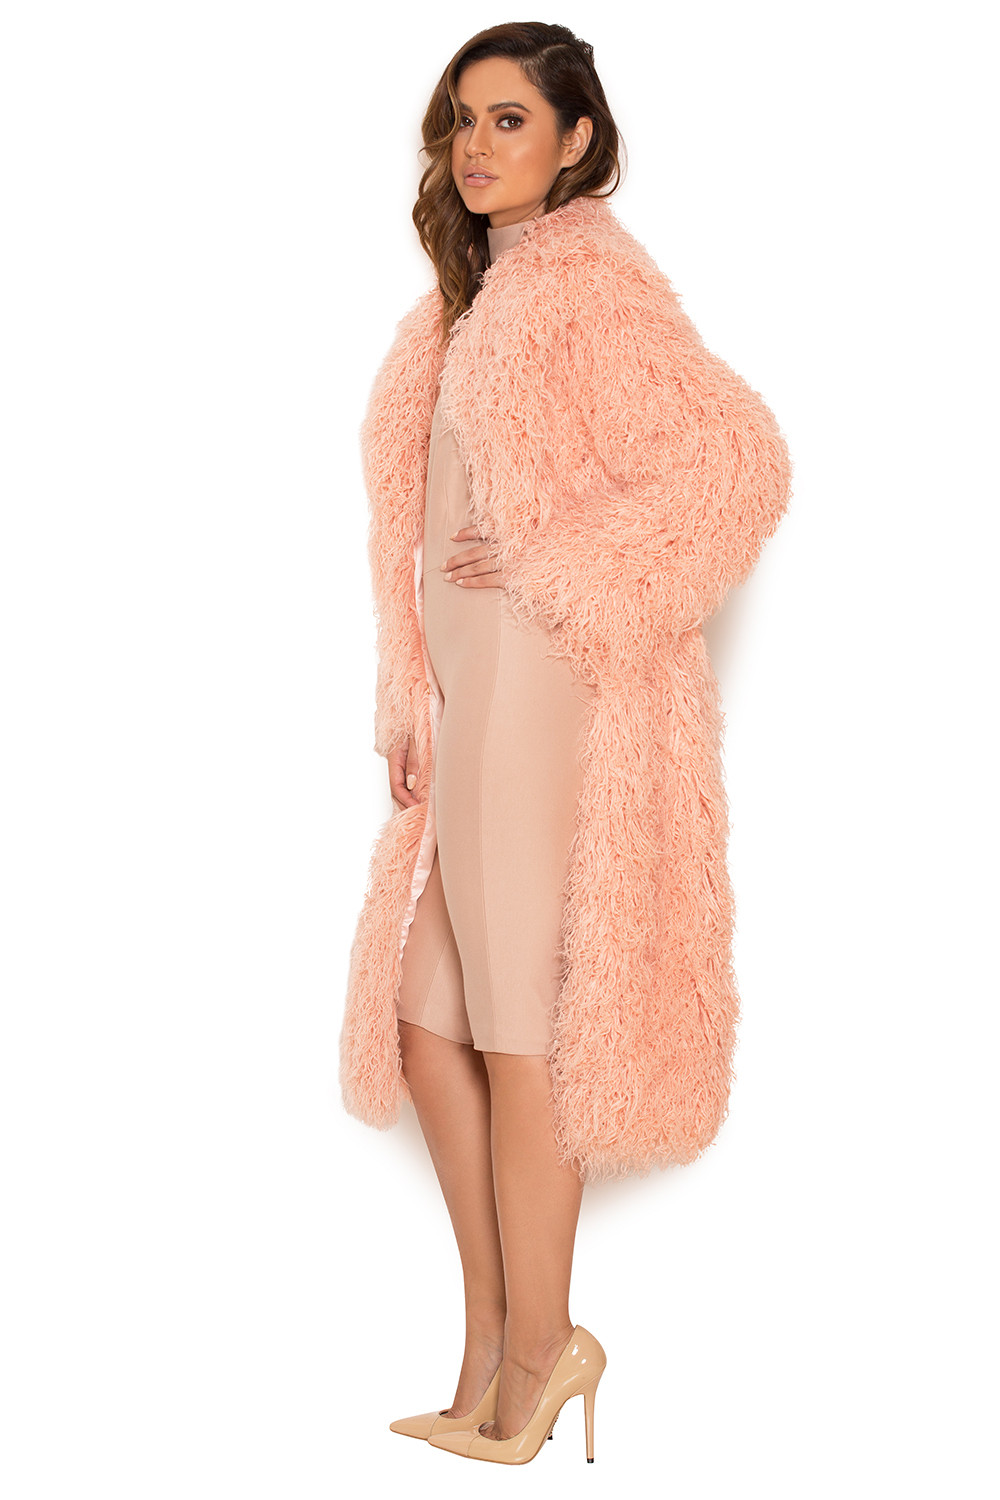 Clothing : Jackets : 'Felicita' Blush Faux Fur Curly Shearling Coat